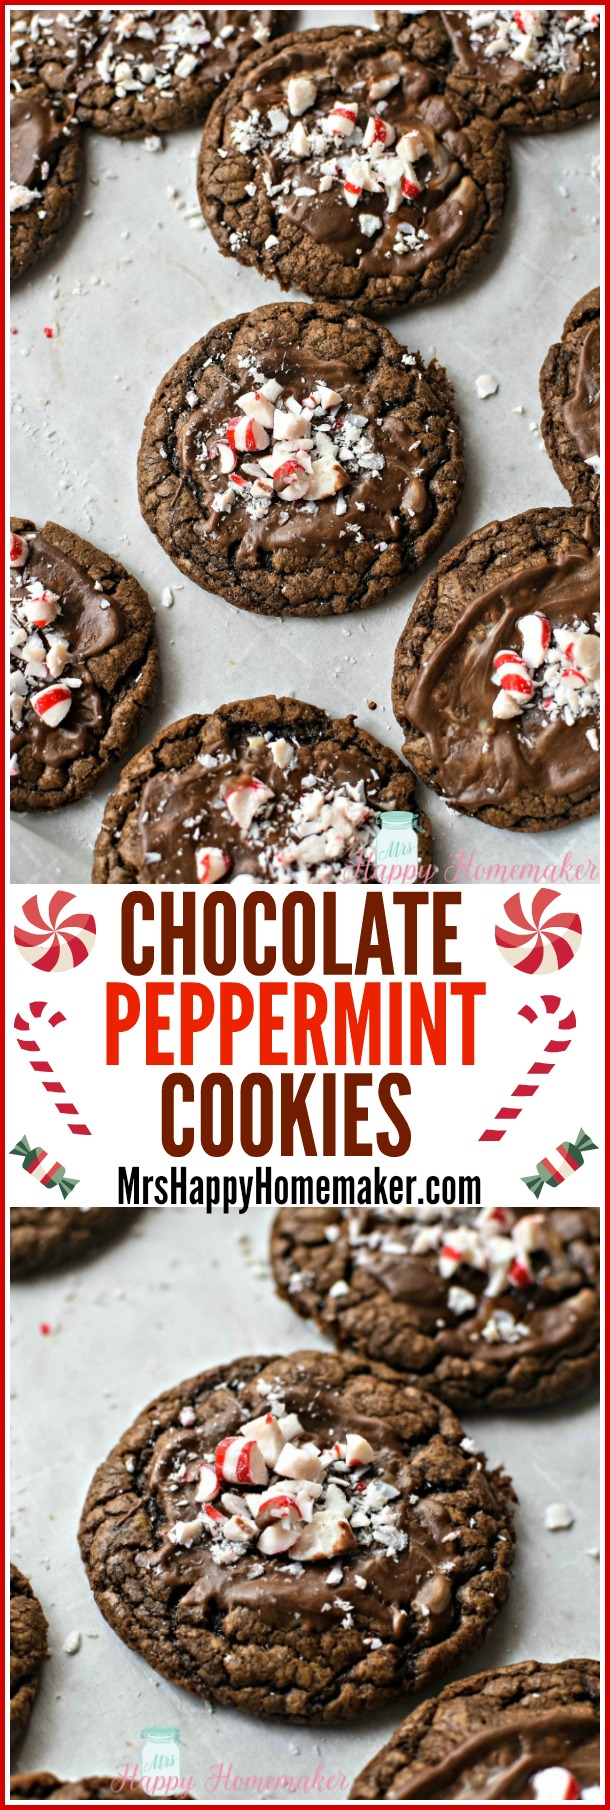 Chocolate Peppermint Cookies | MrsHappyHomemaker.com @thathousewife